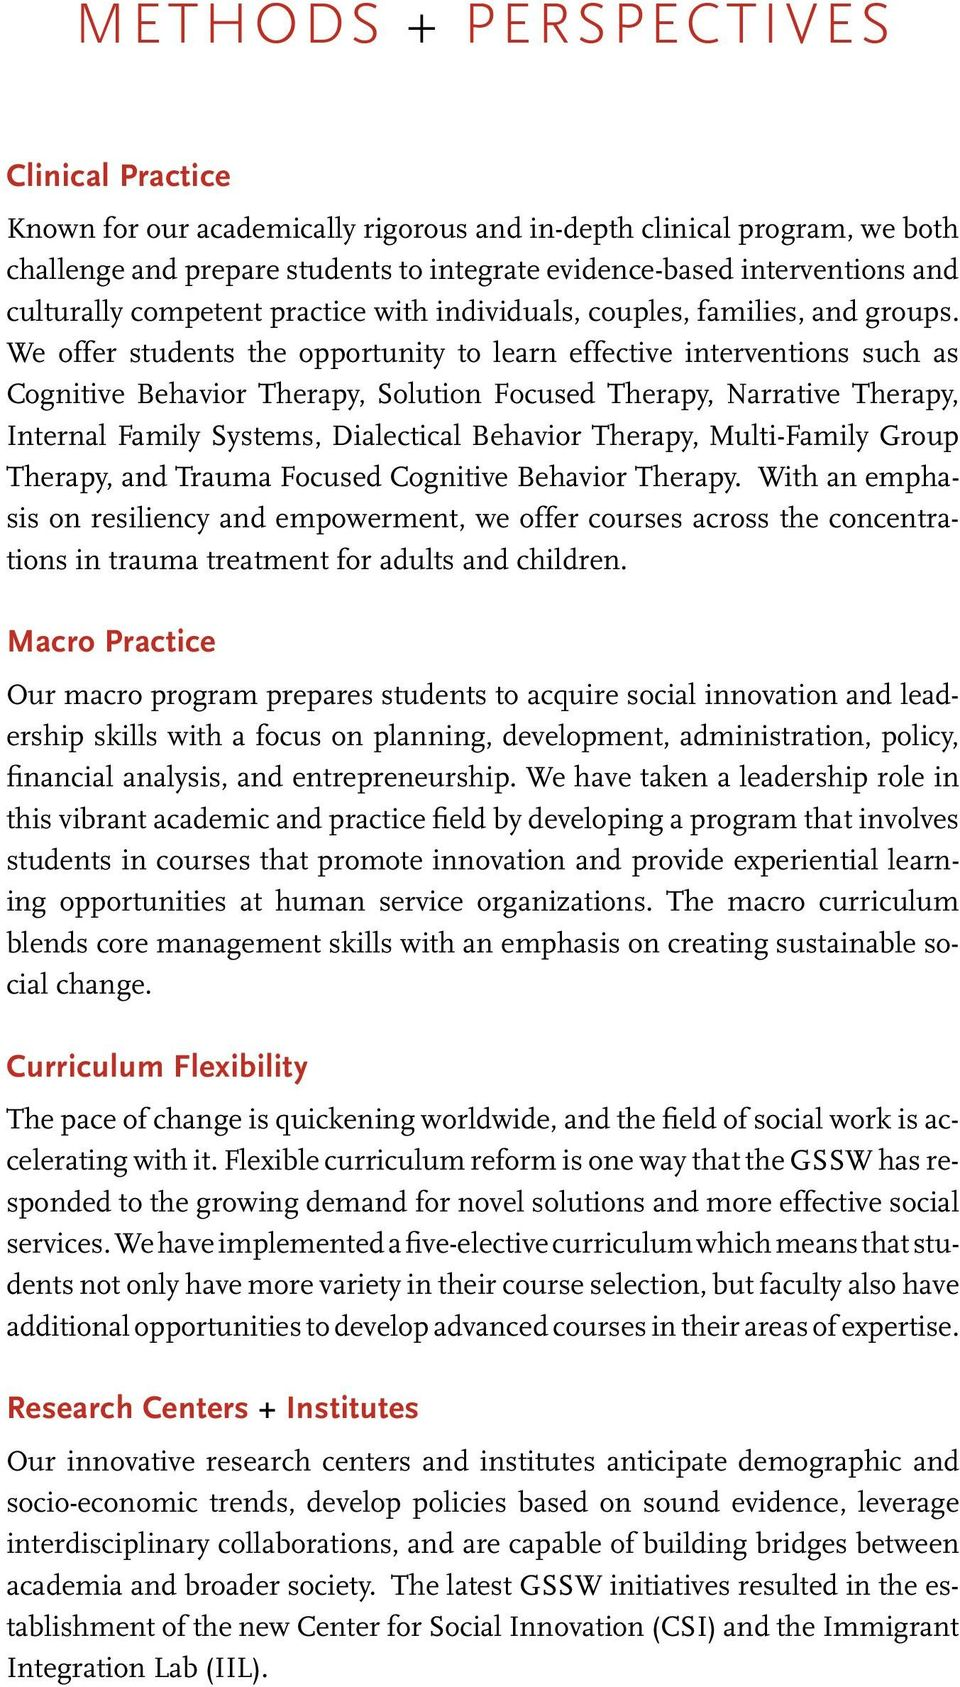 We offer students the opportunity to learn effective interventions such as Cognitive Behavior Therapy, Solution Focused Therapy, Narrative Therapy, Internal Family Systems, Dialectical Behavior